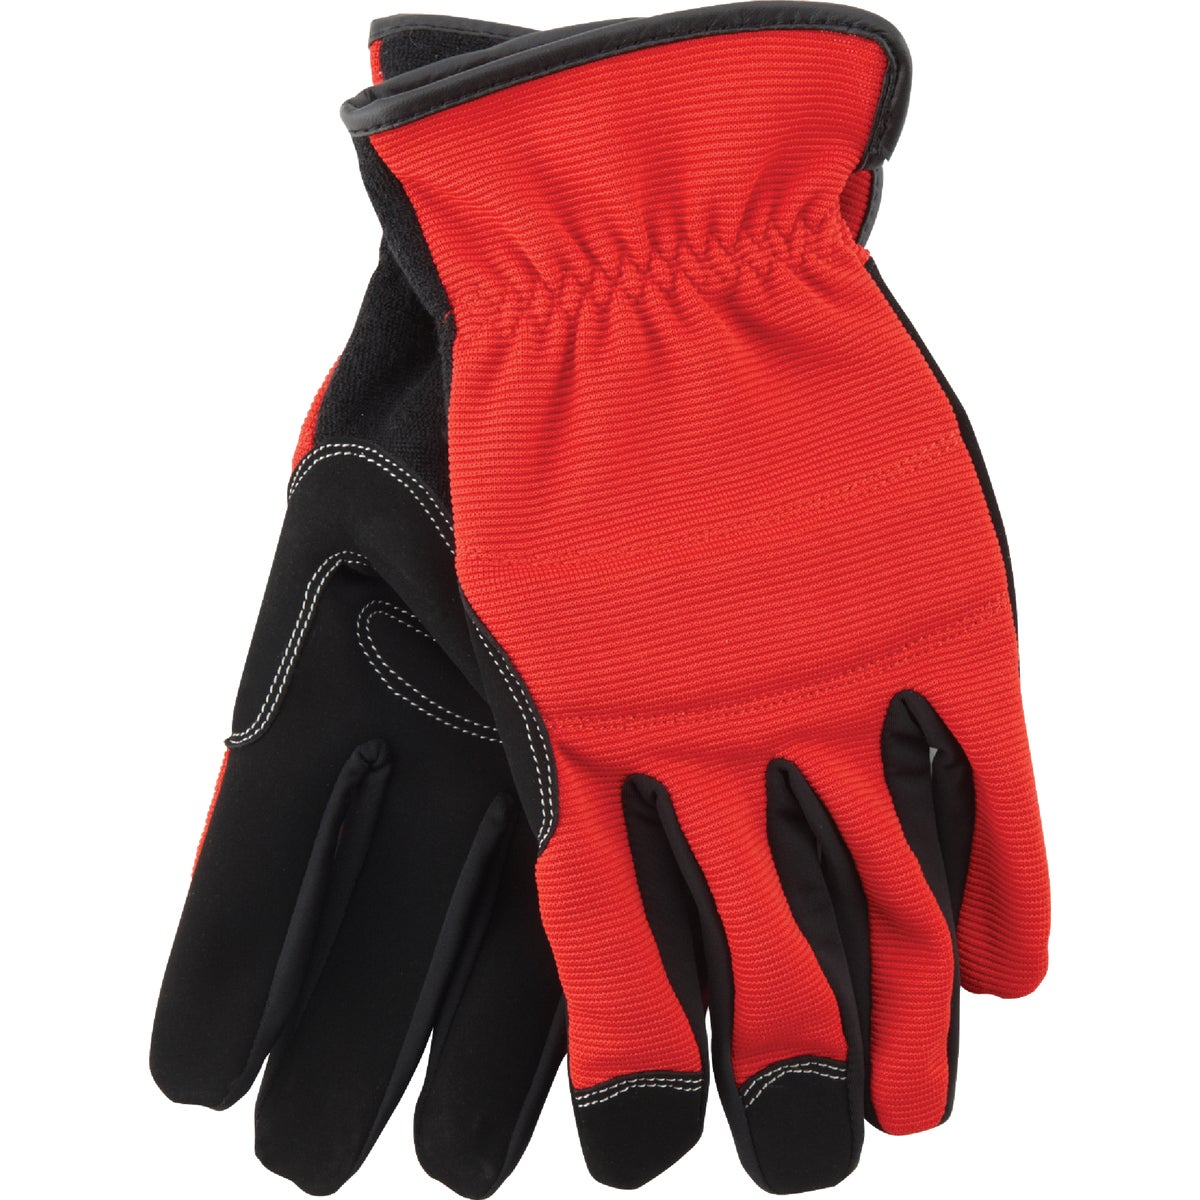 LRG SHIR WRIST A/P GLOVE - 706400 by Do it Best